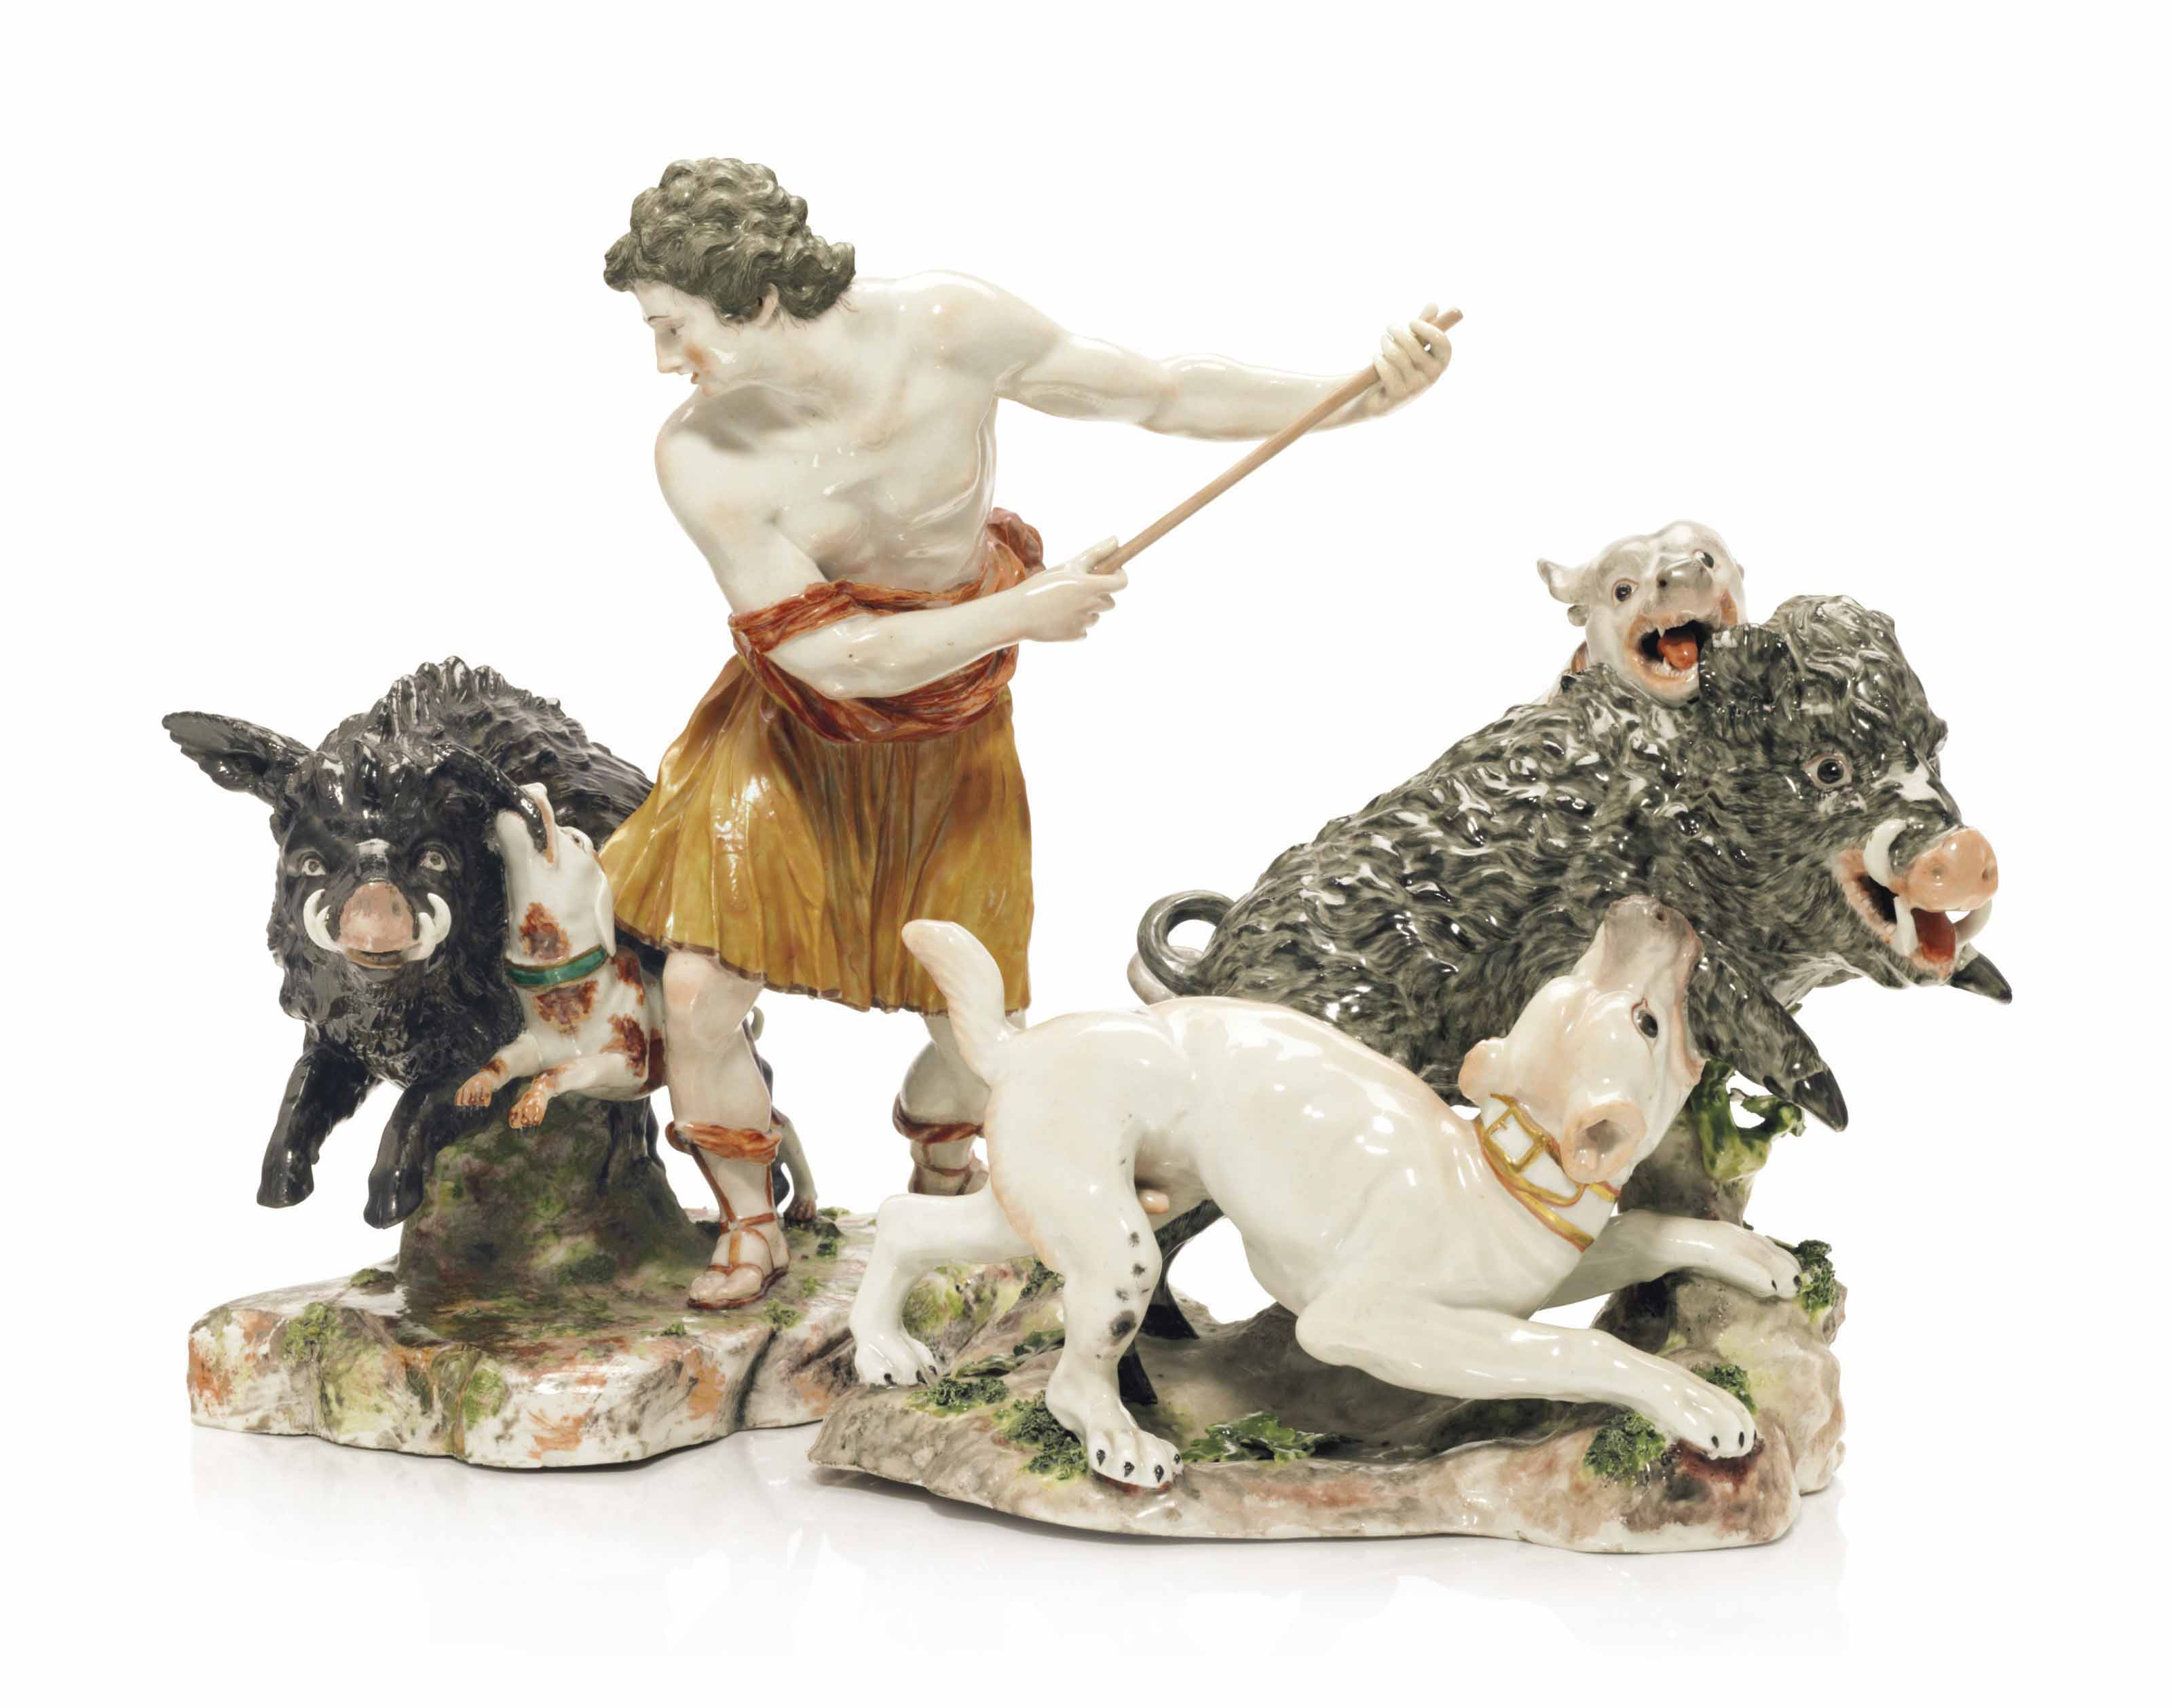 TWO LUDWIGSBURG PORCELAIN BOAR HUNT GROUPS